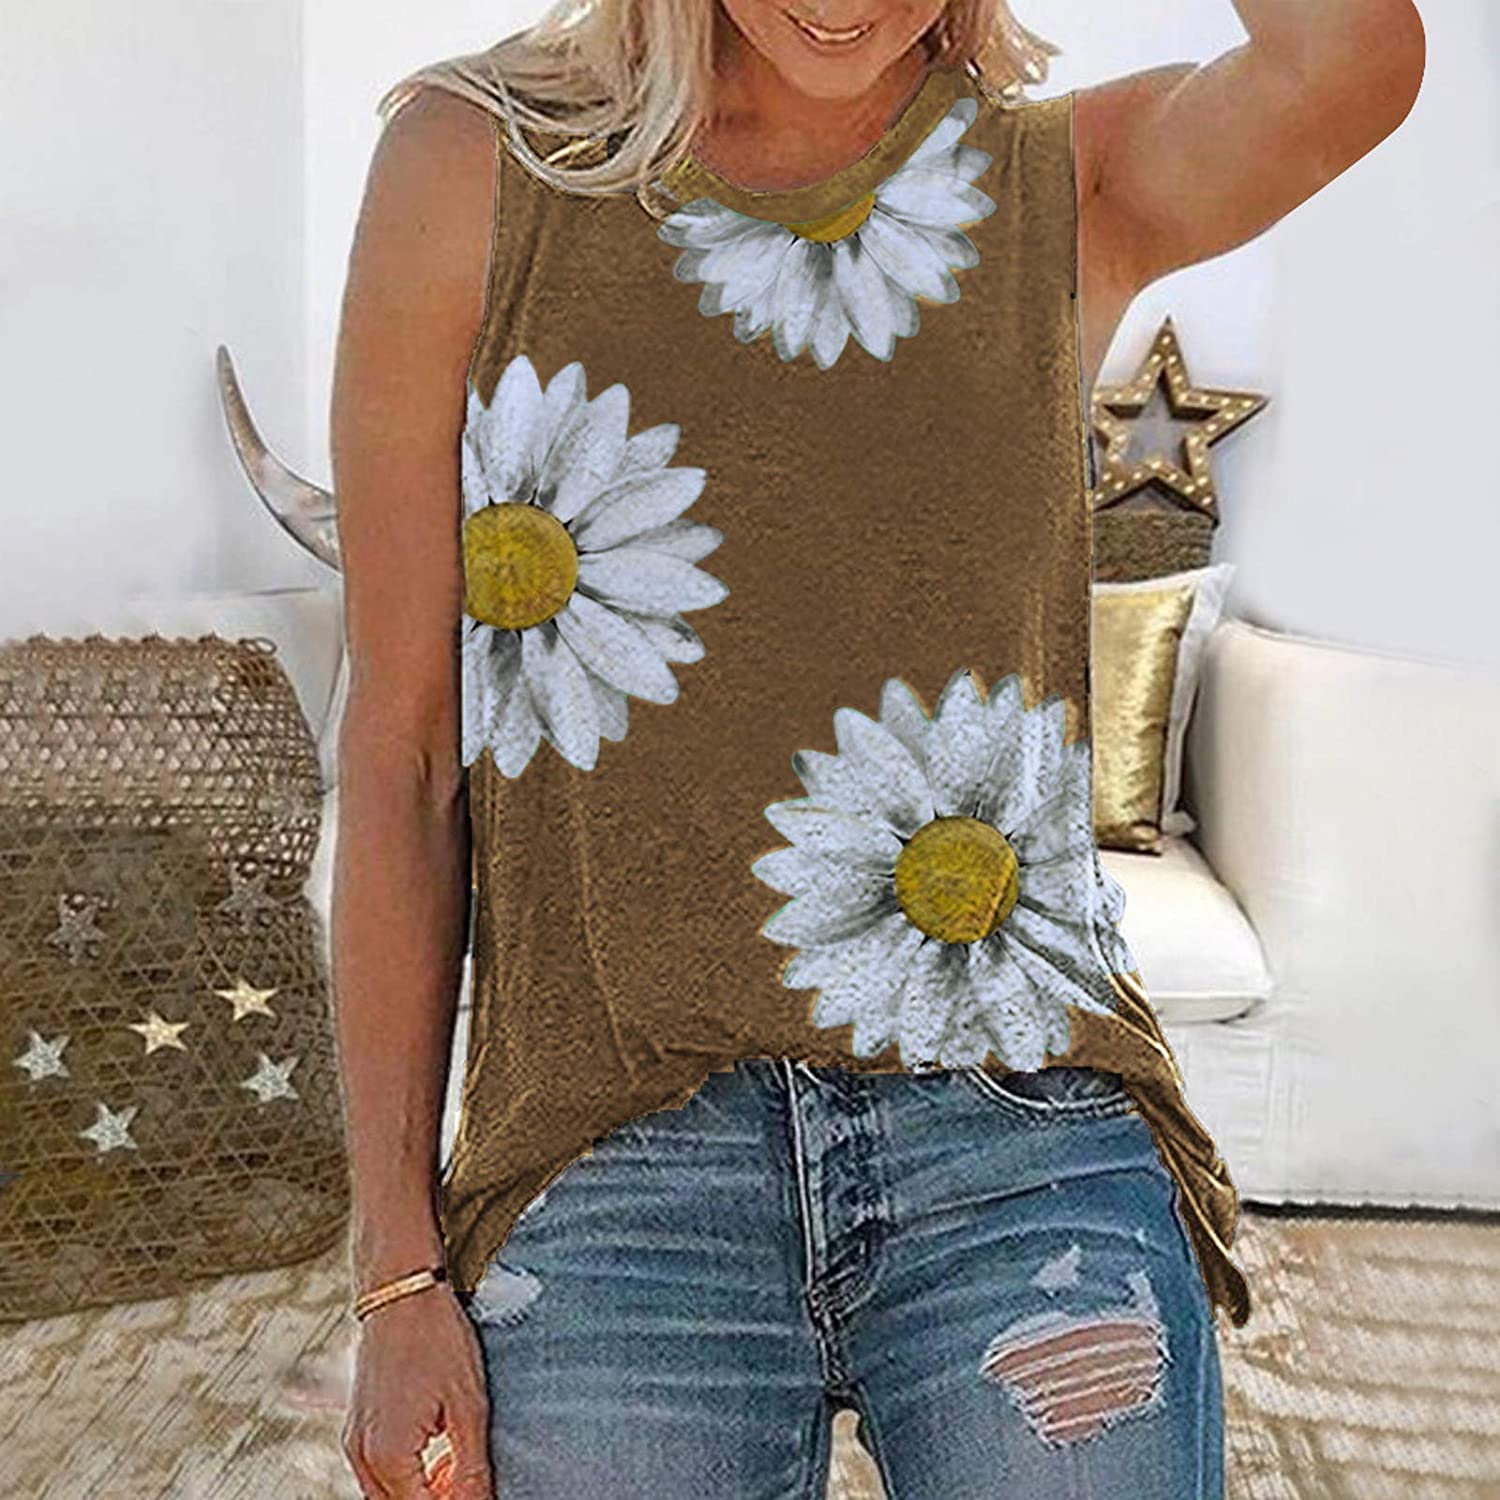 Gerichy Tank Tops for Women, Womens Summer Casual Sleeveless Plus Size Loose Fit Blouses Tees Tank Shirts Tunics Tops